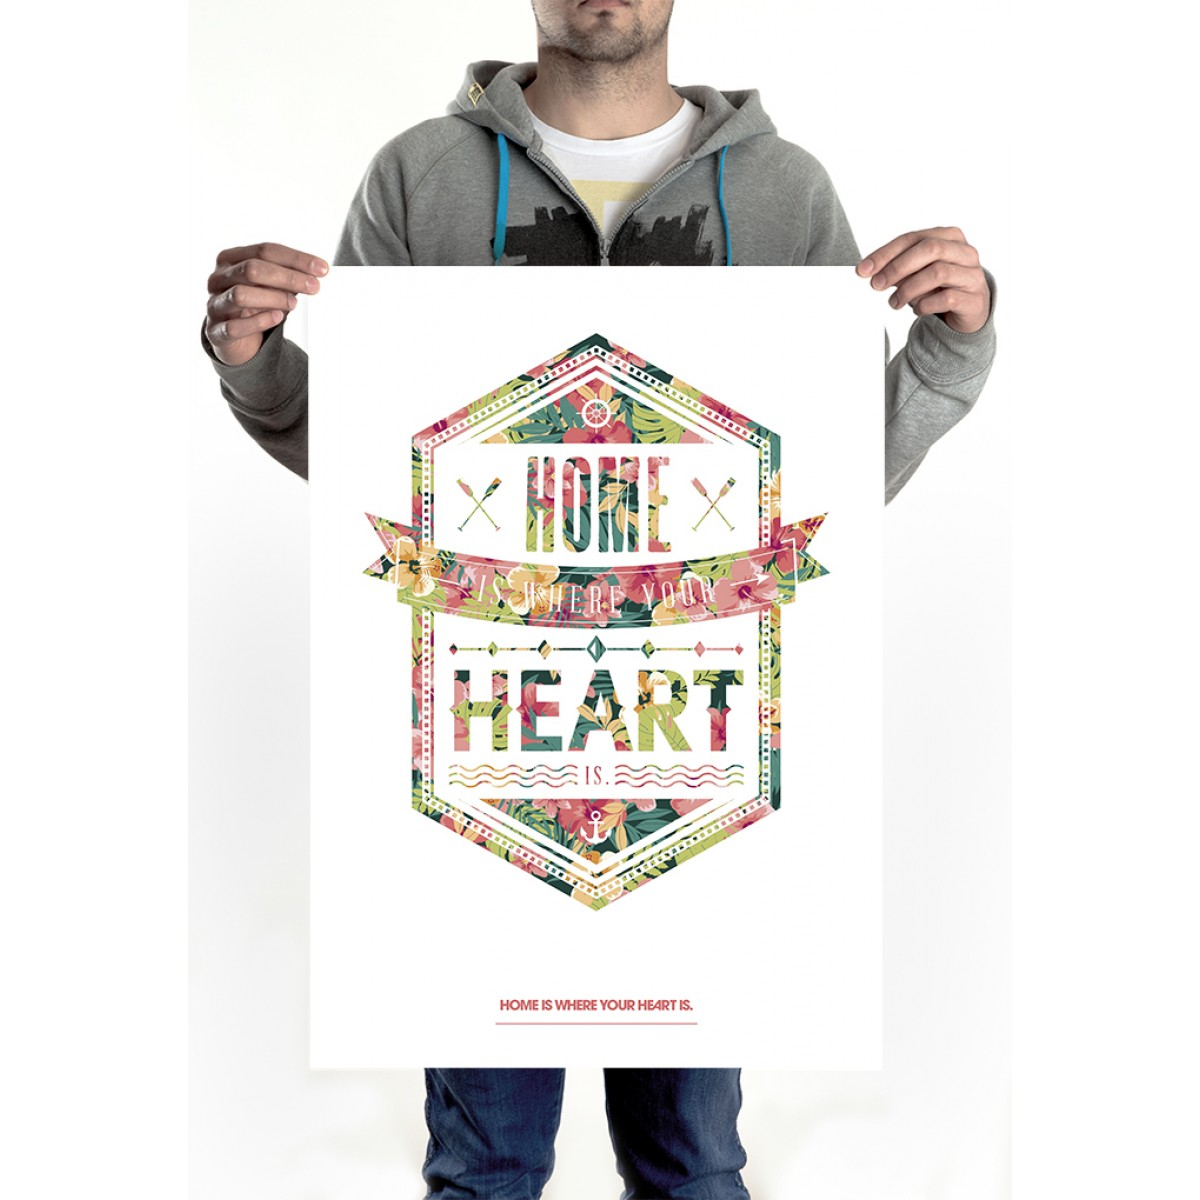 HOME IS WHERE YOUR HEART IS. - HERE AND NOW ALOHA POSTER (50 x 70 cm)